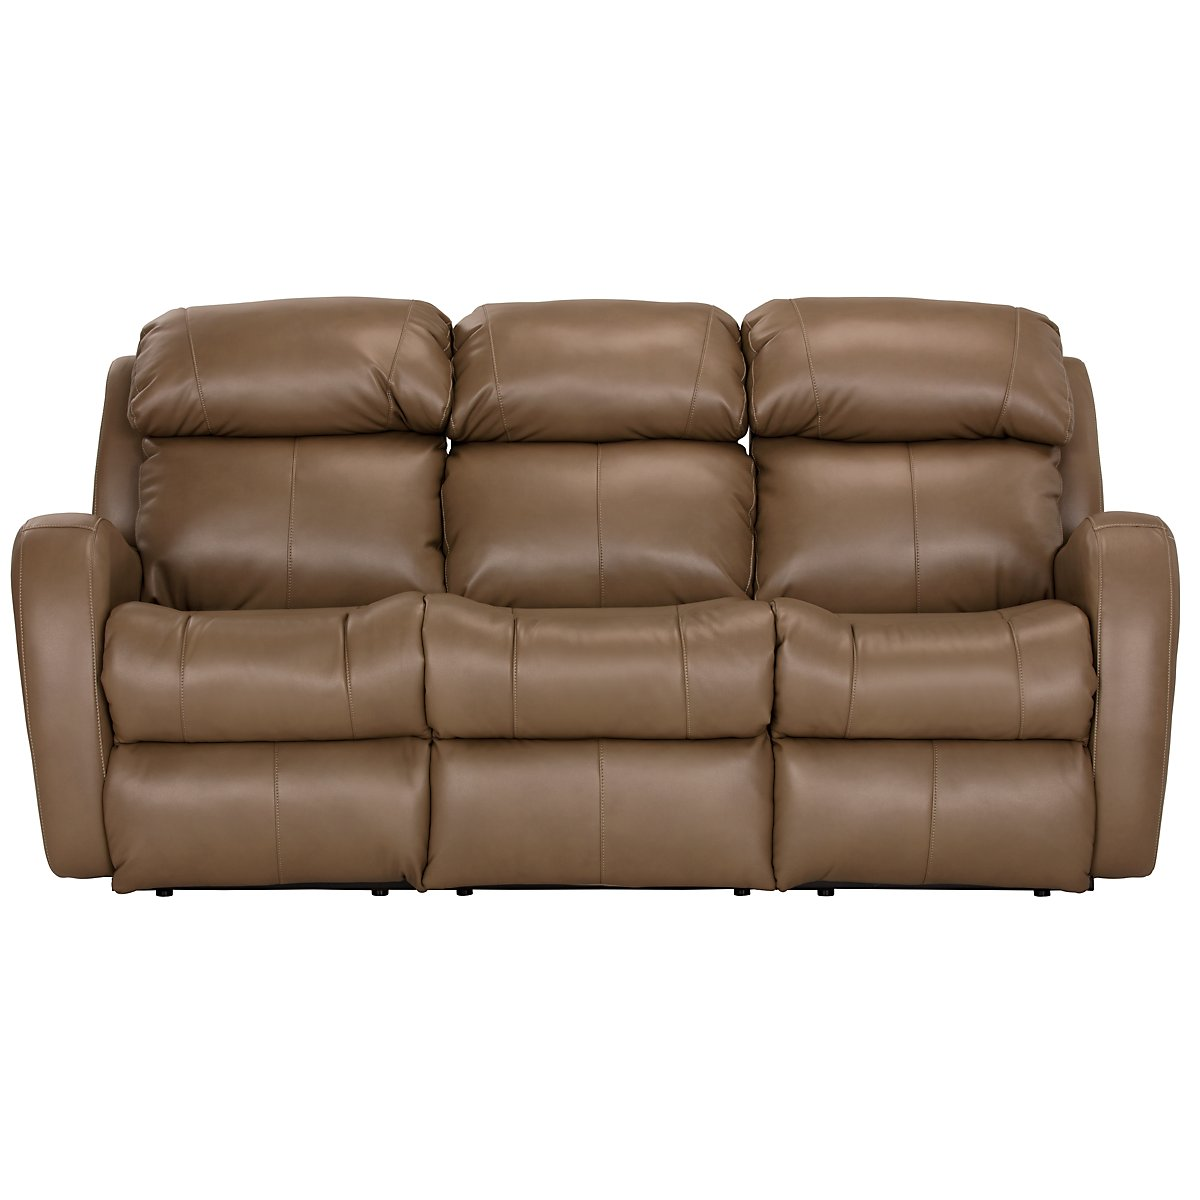 City furniture finn brown microfiber power reclining sofa Brown microfiber couch and loveseat